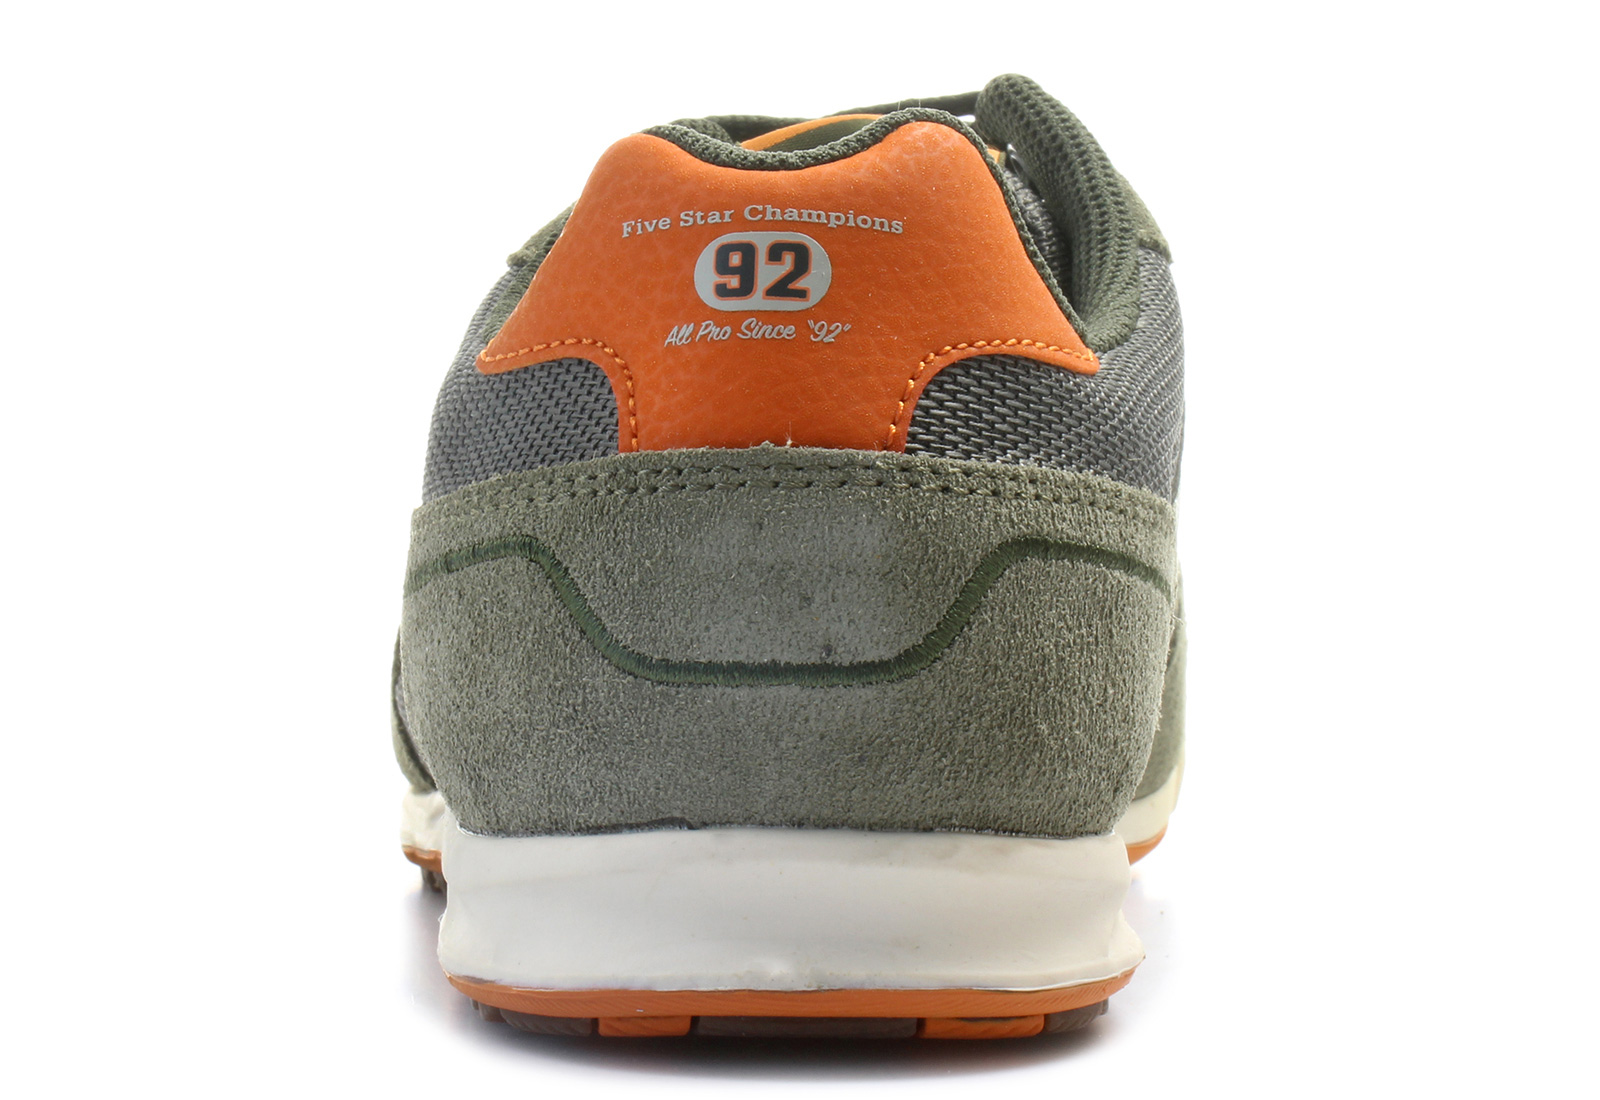 skechers five star champions 92 Sale,up